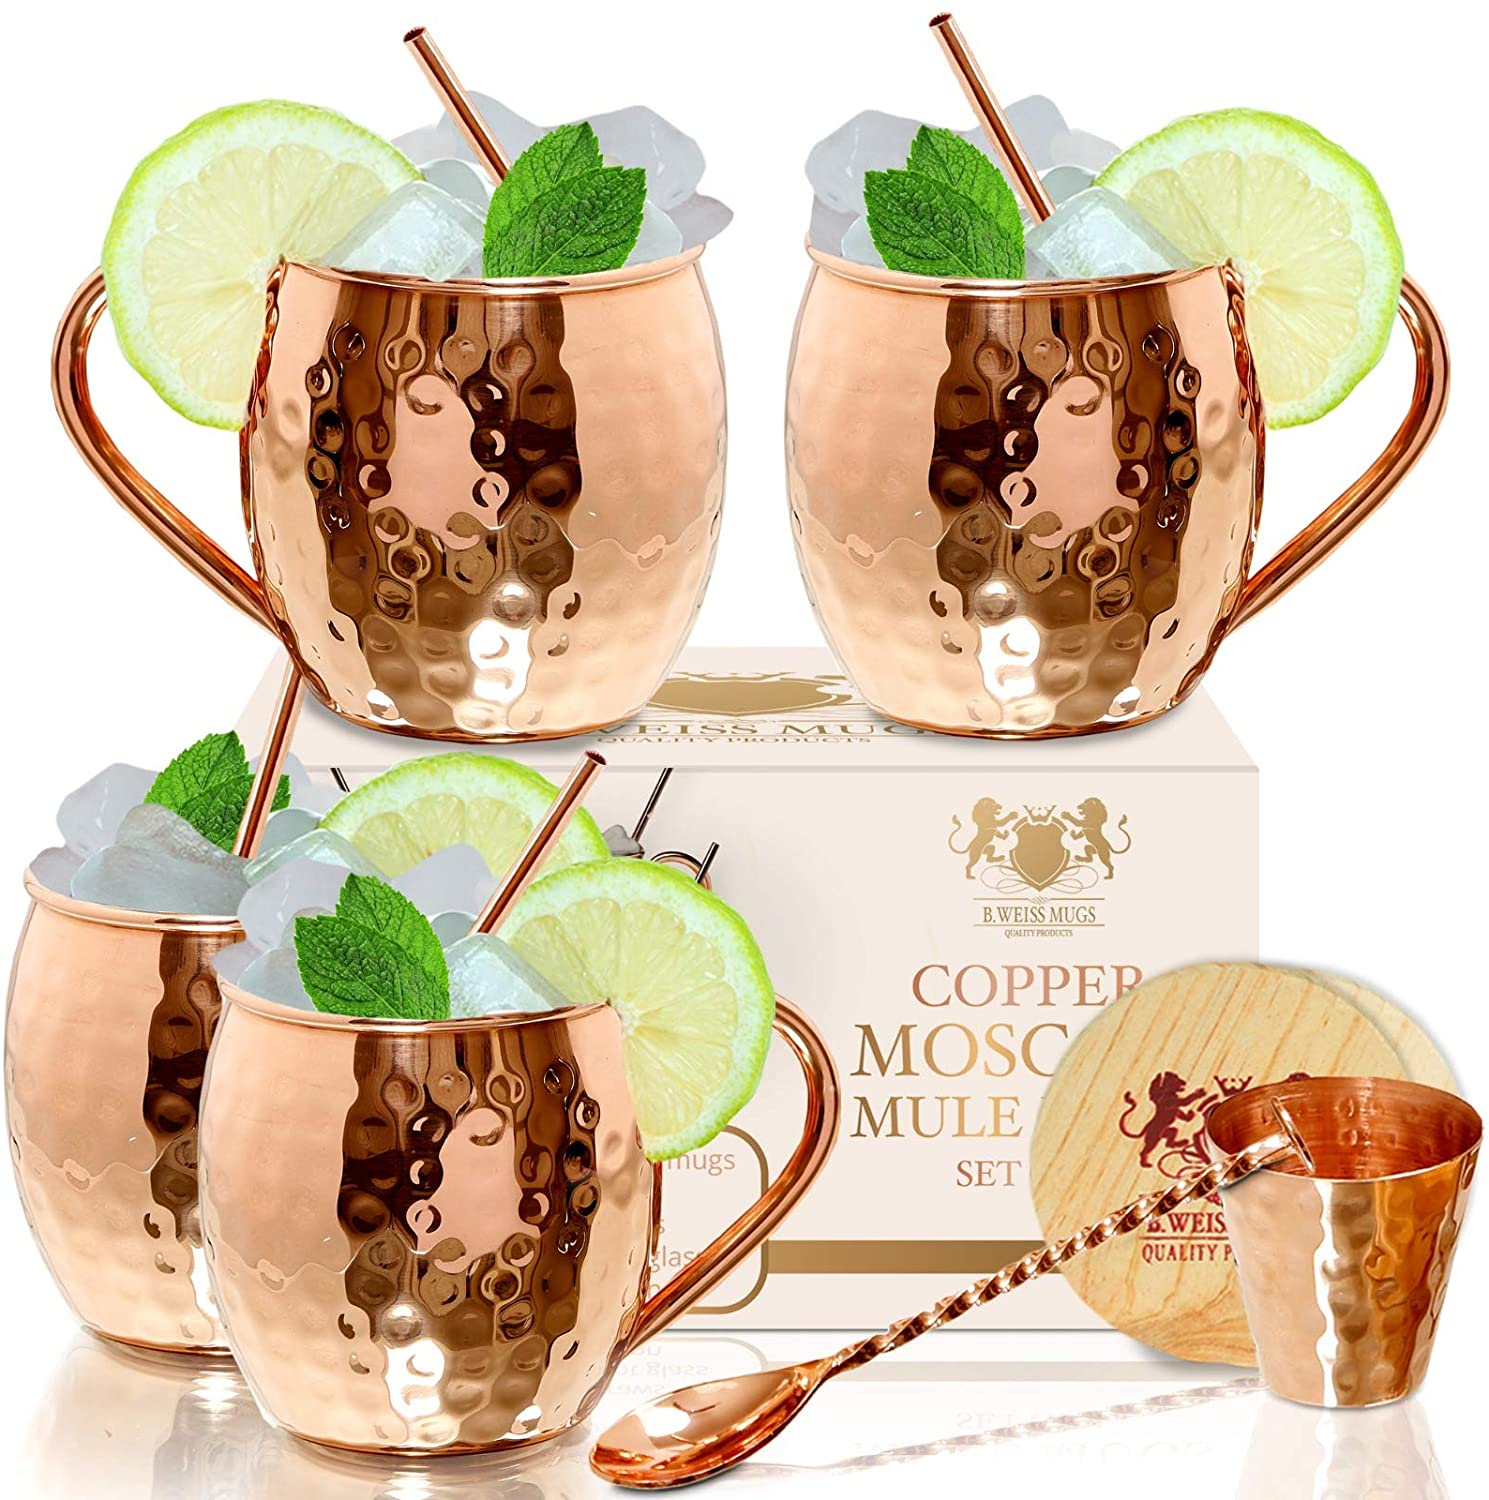 gifts-for-7th-anniversary-moscow-mule